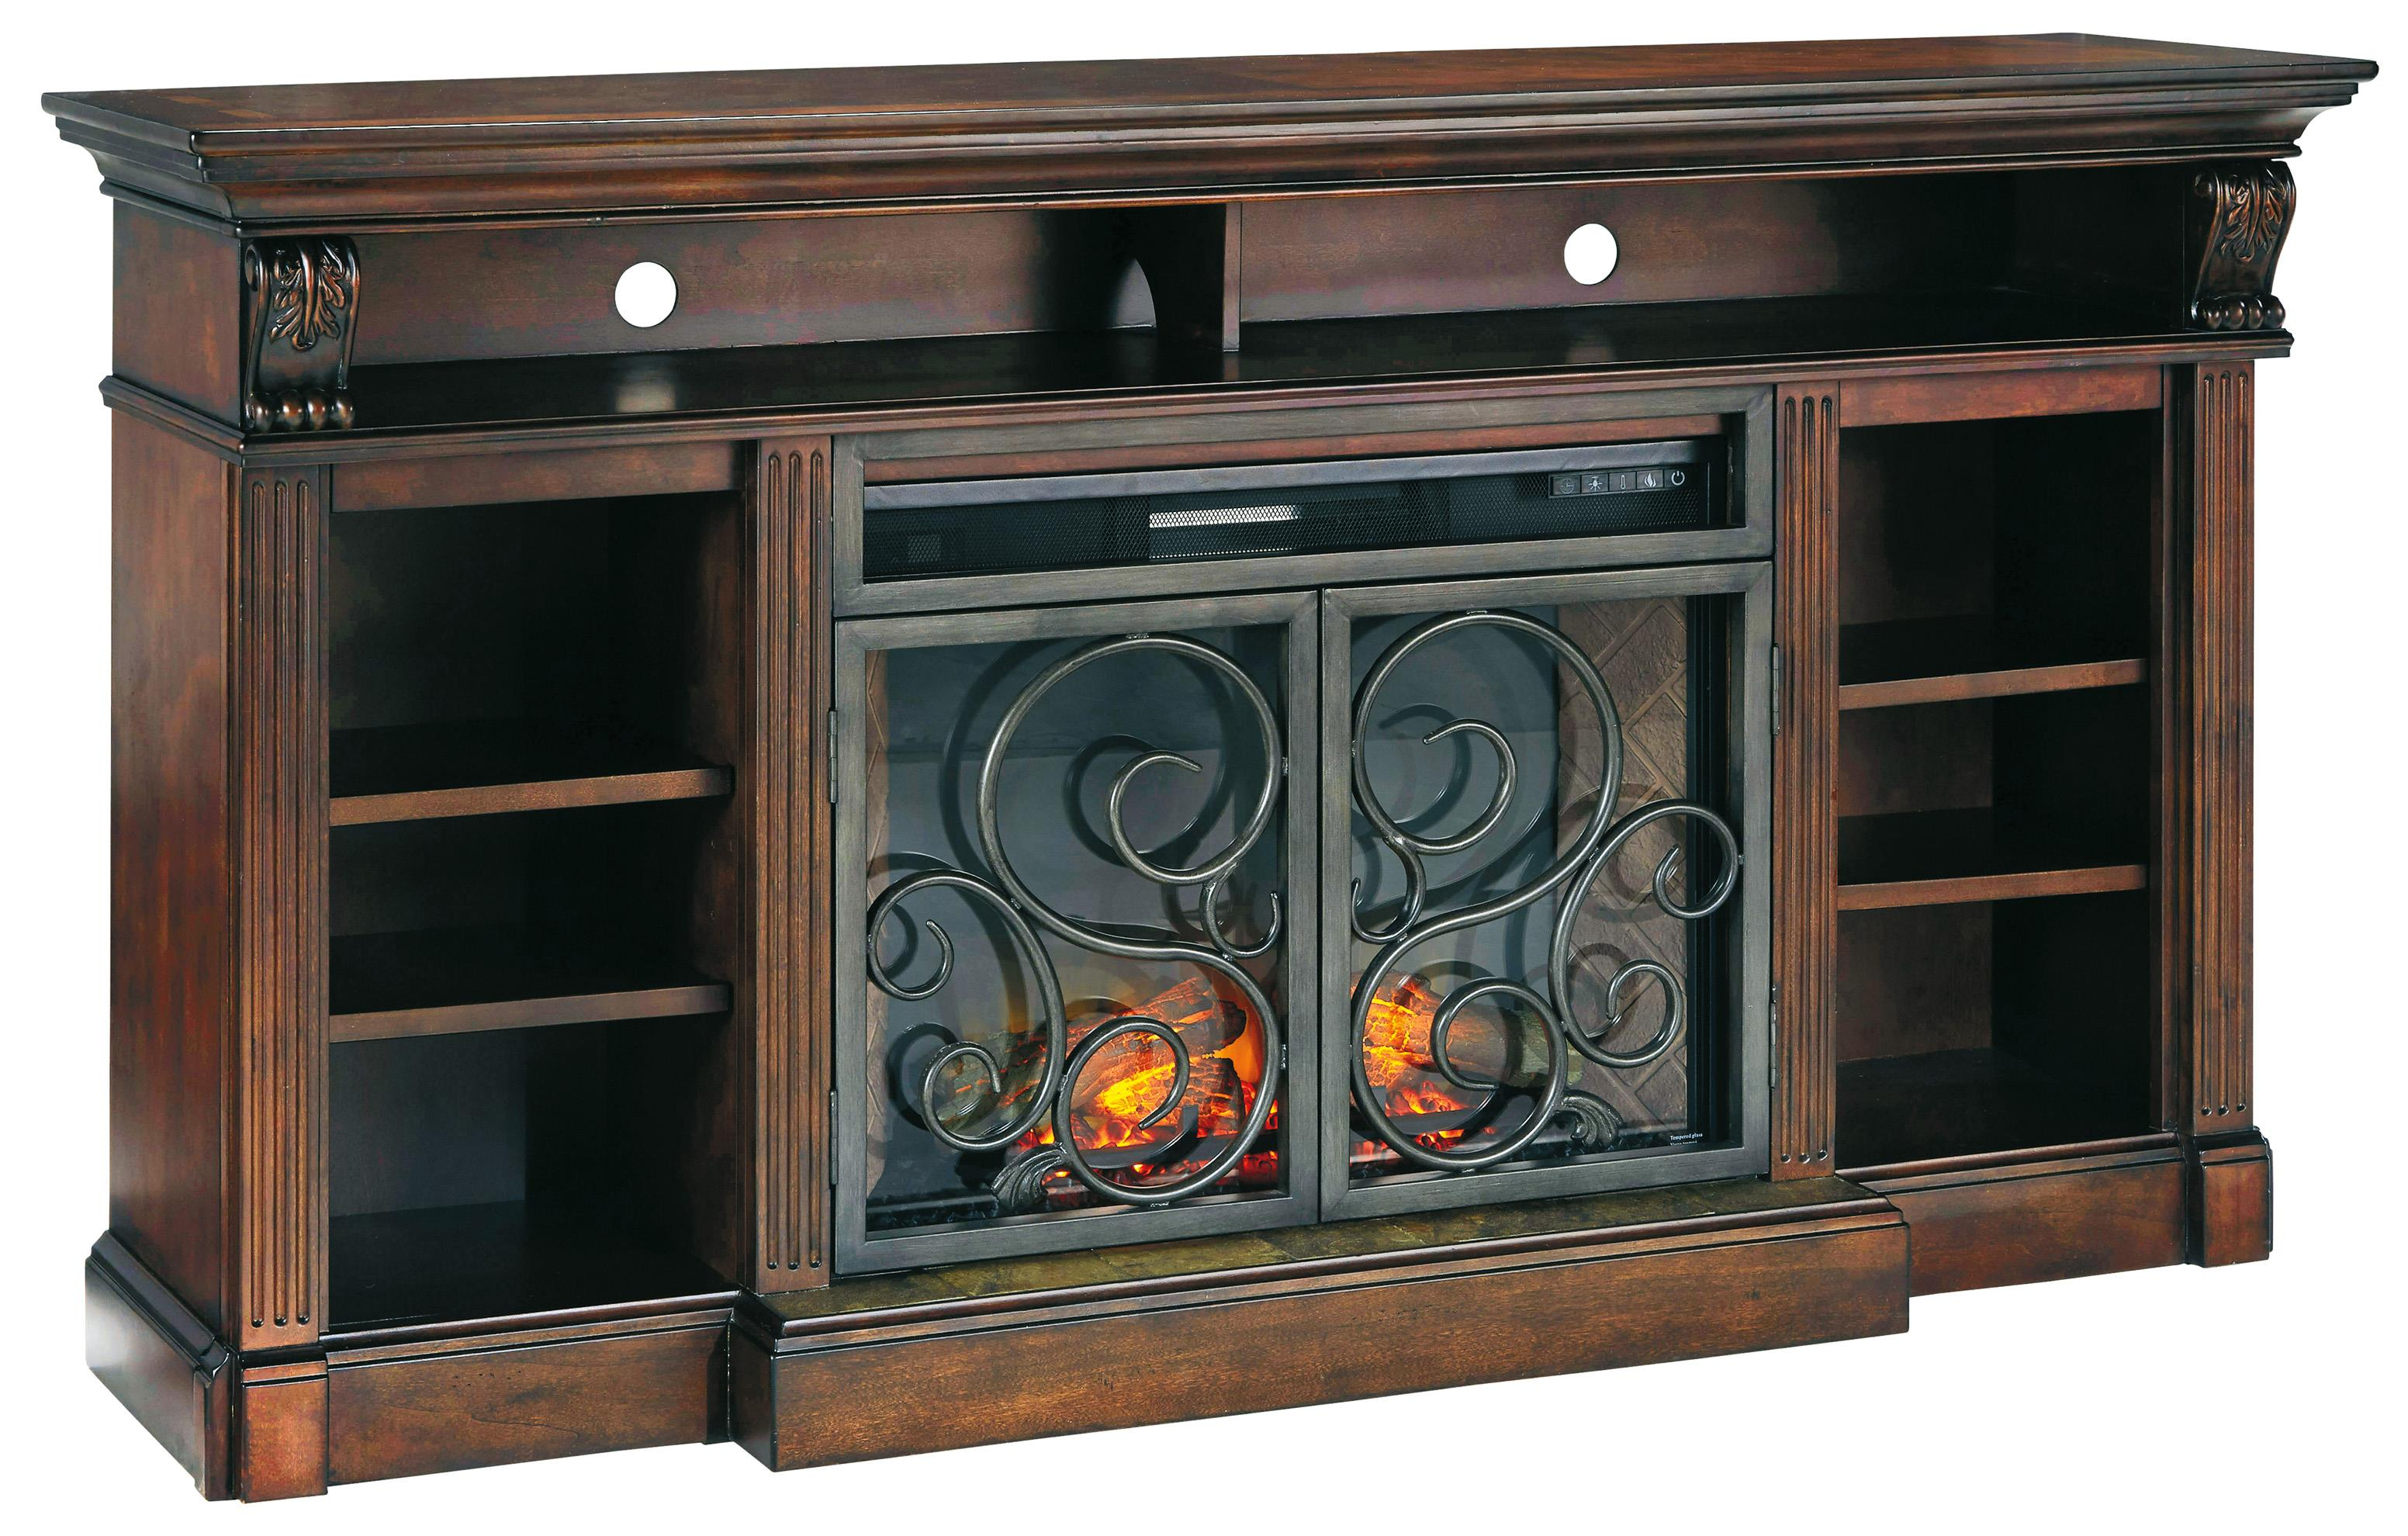 Signature Design by Ashley Alymere Extra Large TV Stand w/ Fireplace Insert - Item Number: W669-88+W100-21